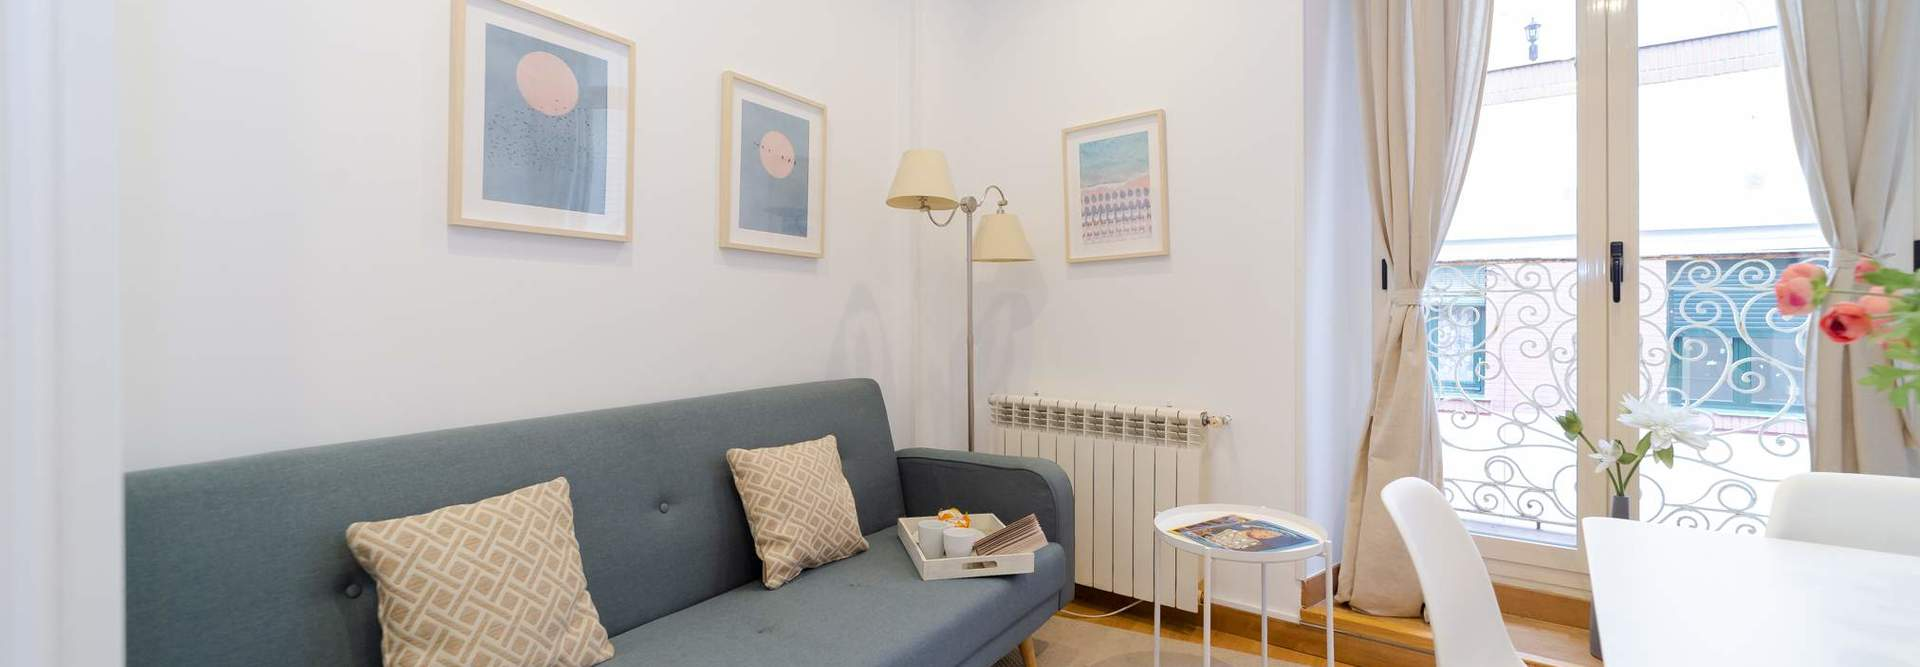 Home alquiler apartamentos madrid mad4rent 26